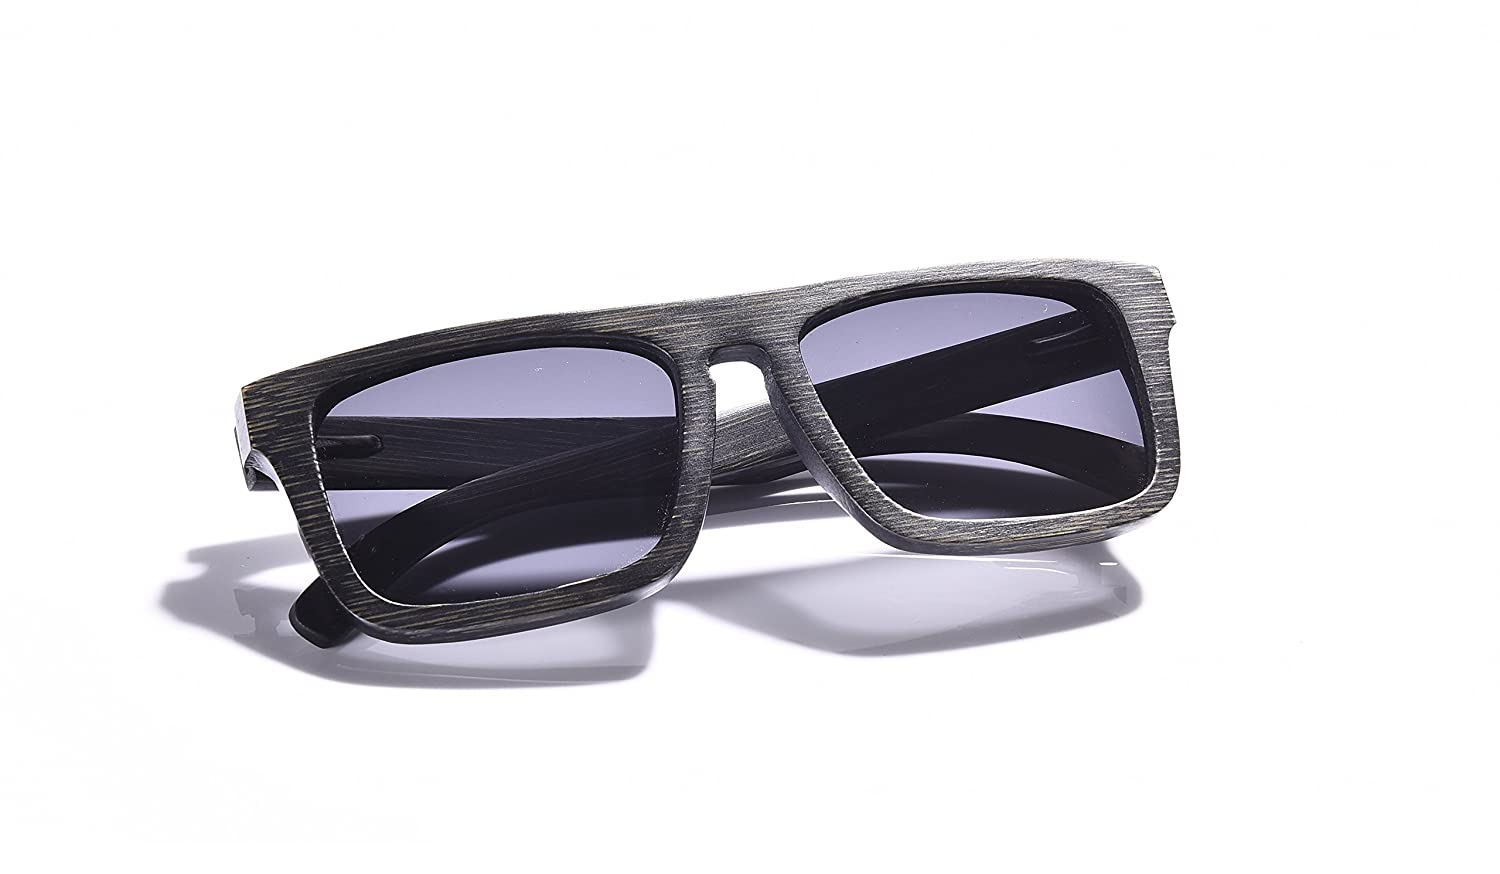 Bamboo Wood Sunglasses in Rectangular style with Polarized Lens for Men and Women